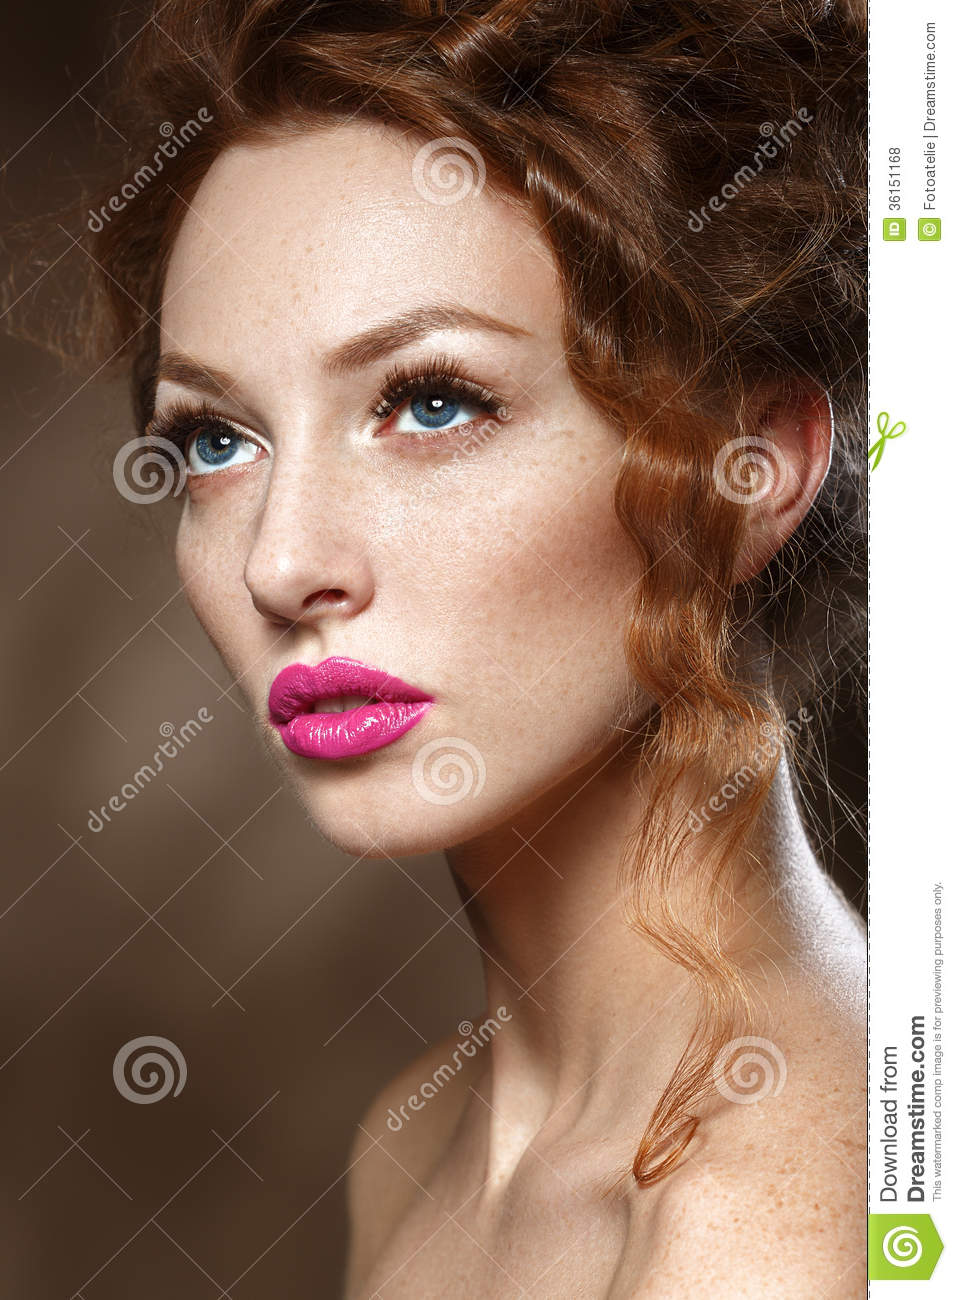 Beauty Fashion Model Girl With Curly Red Hair, Long